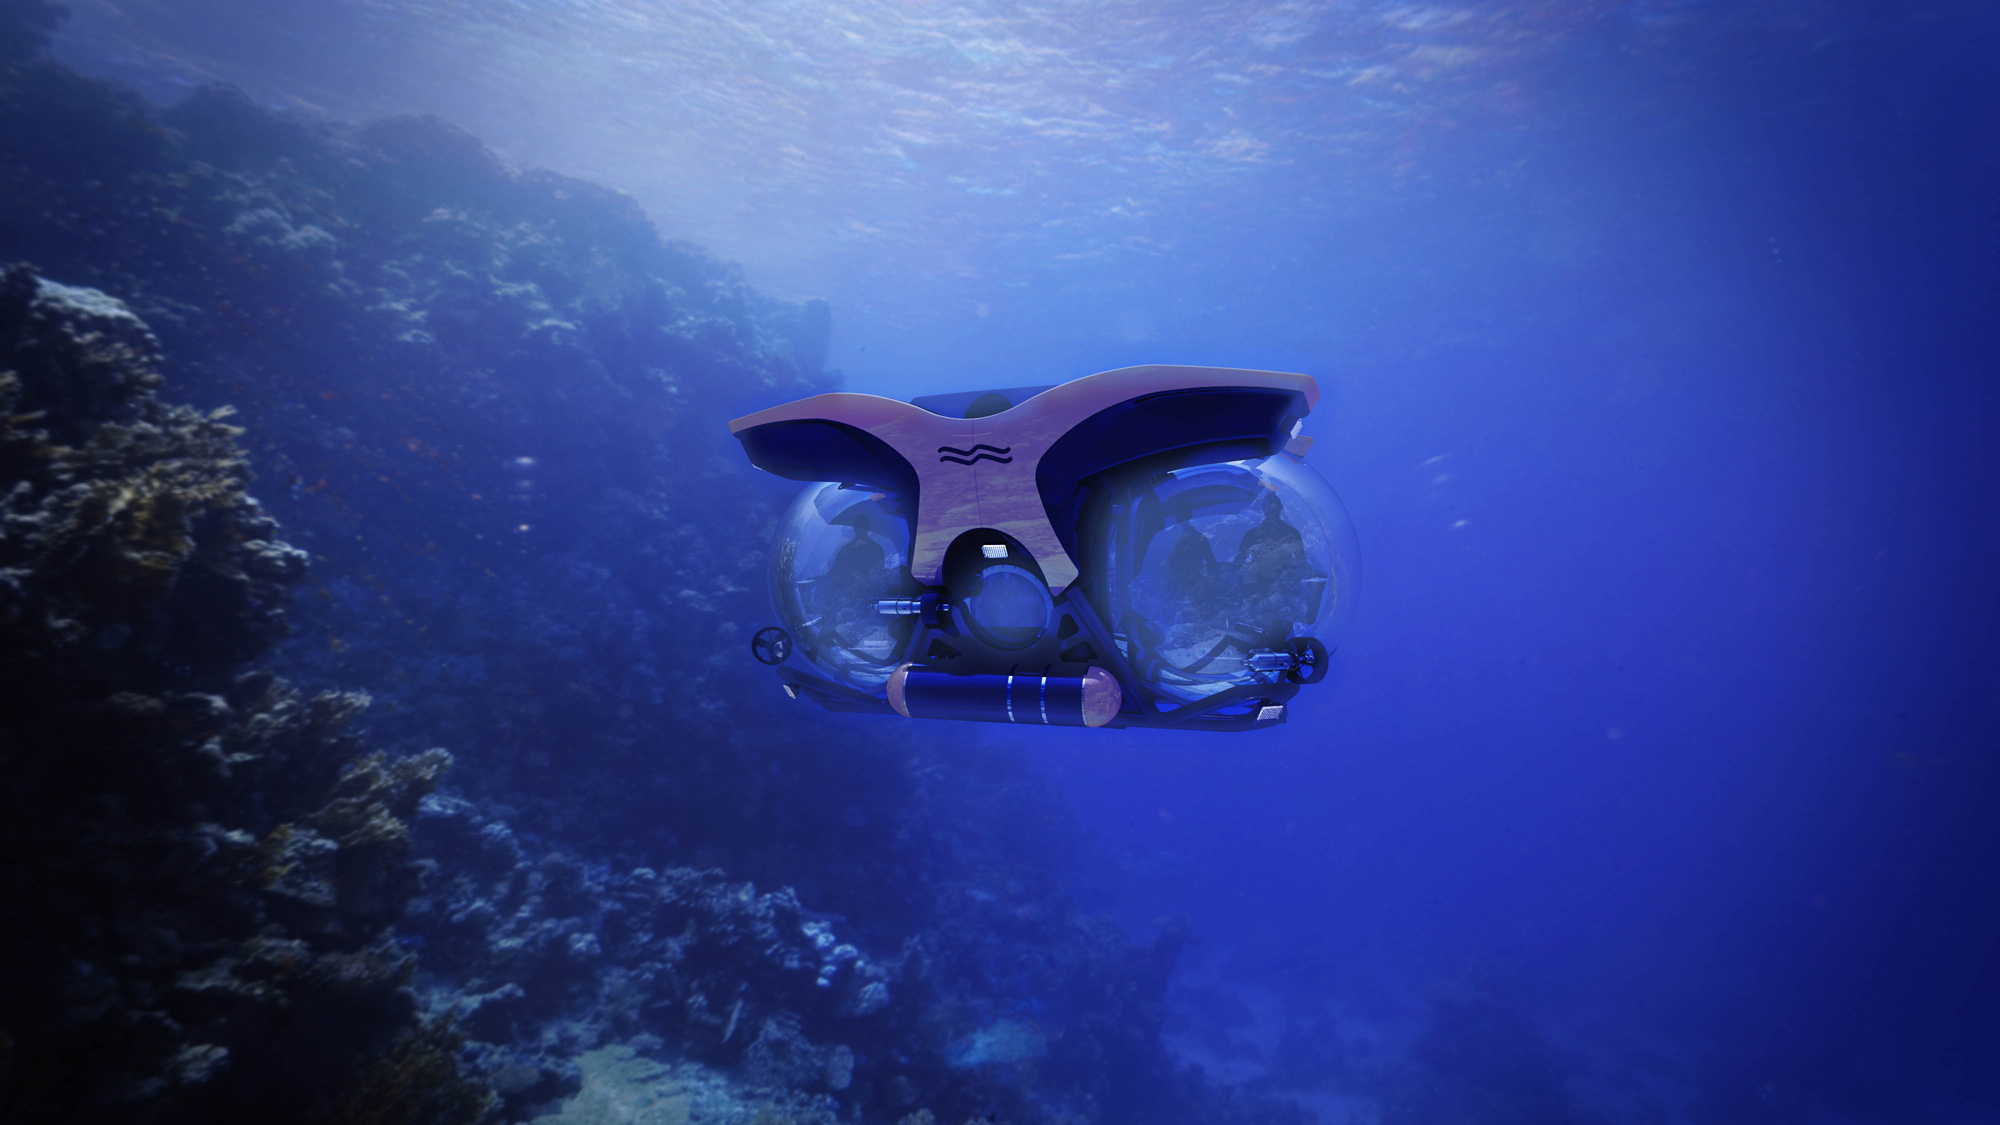 uboat worx submersible exploring a reef